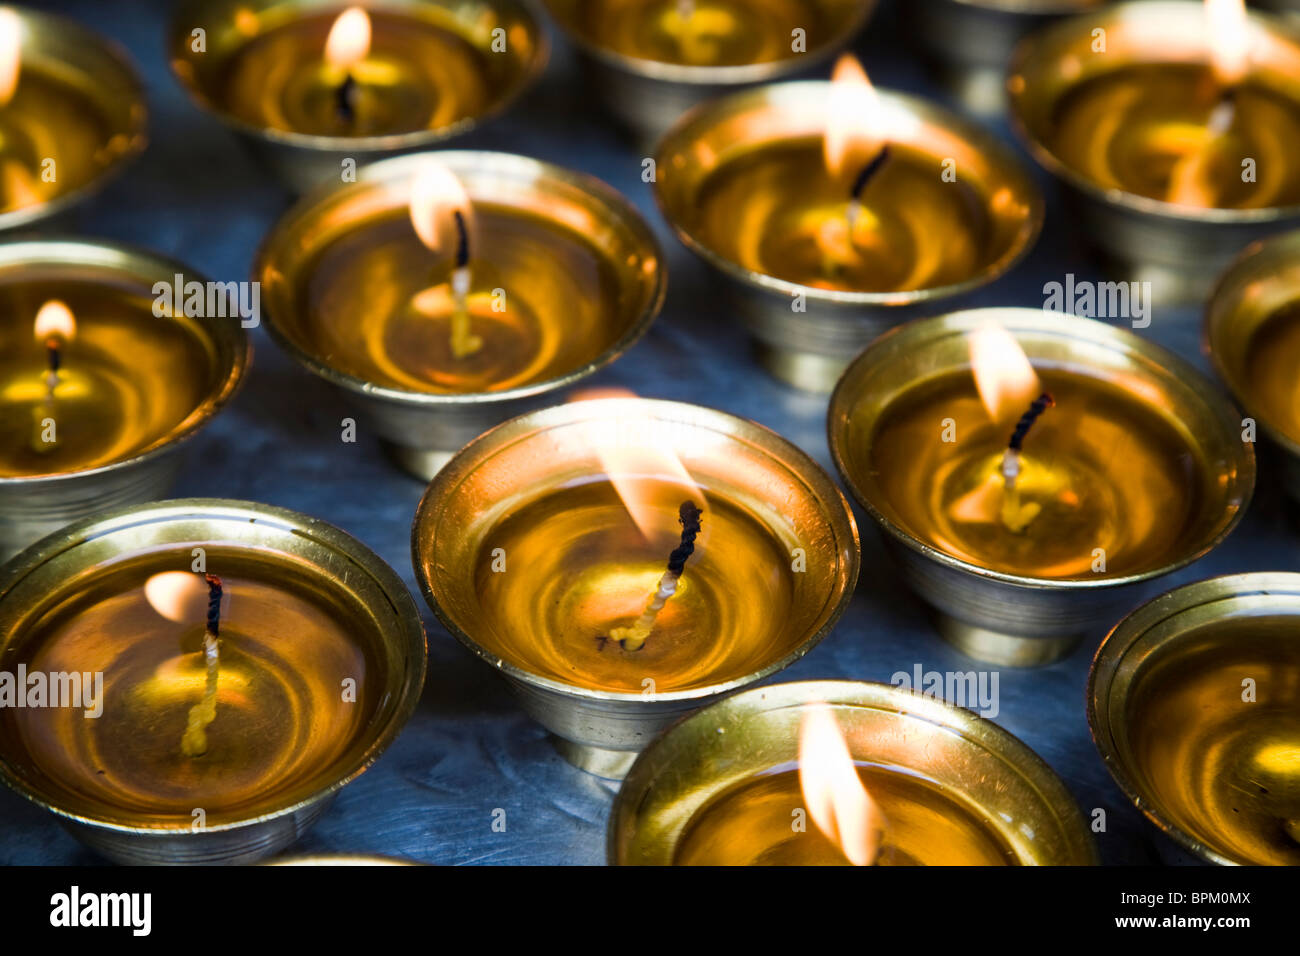 Candles burn in golden colored candle holders Bhutan Asia - Stock Image